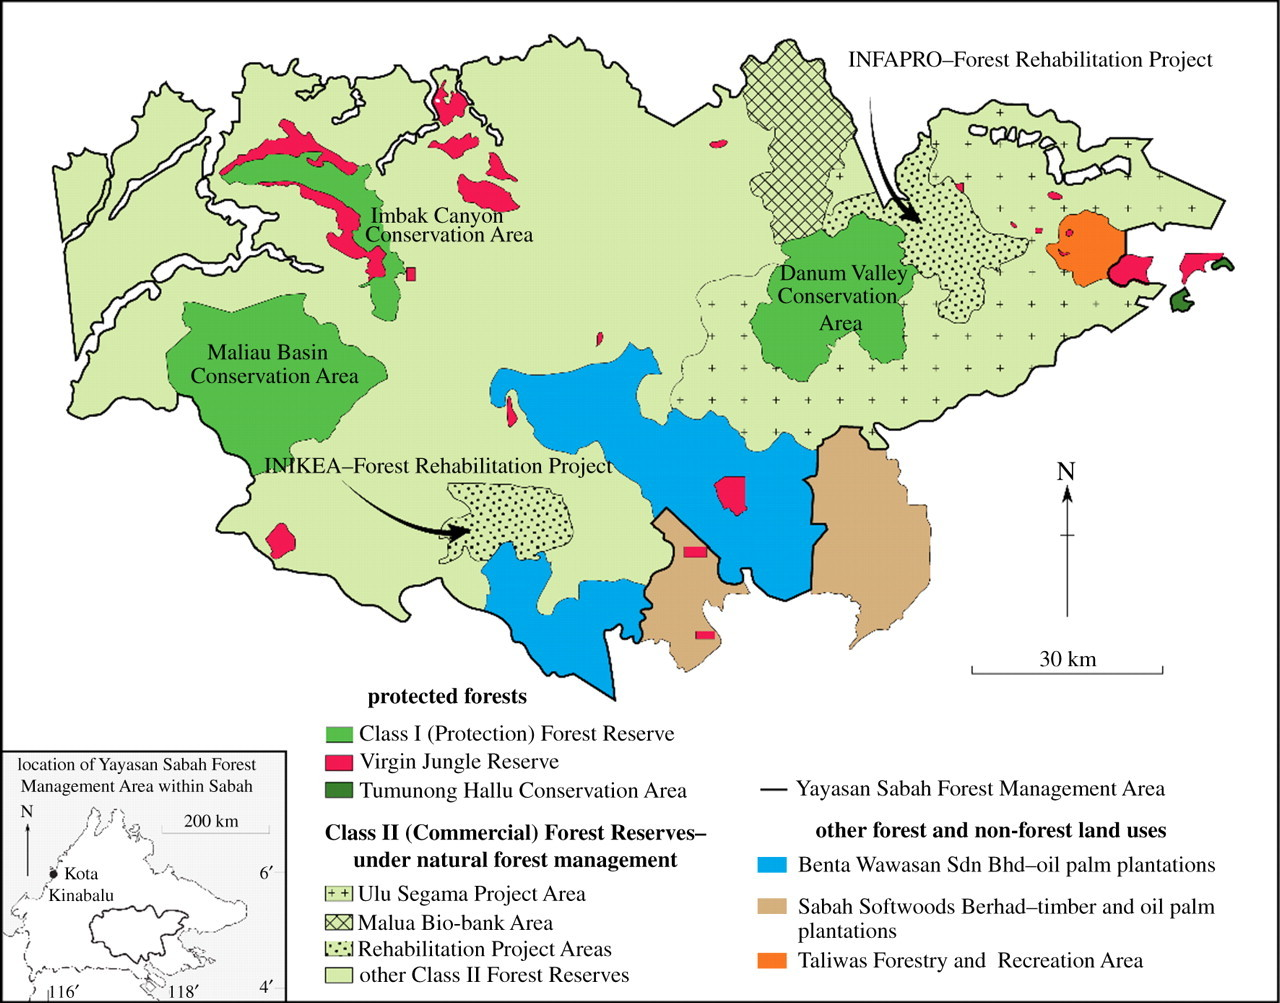 Changes In Forest Land Use And Management In Sabah Malaysian Borneo 1990 2010 With A Focus On The Danum Valley Region Philosophical Transactions Of The Royal Society B Biological Sciences